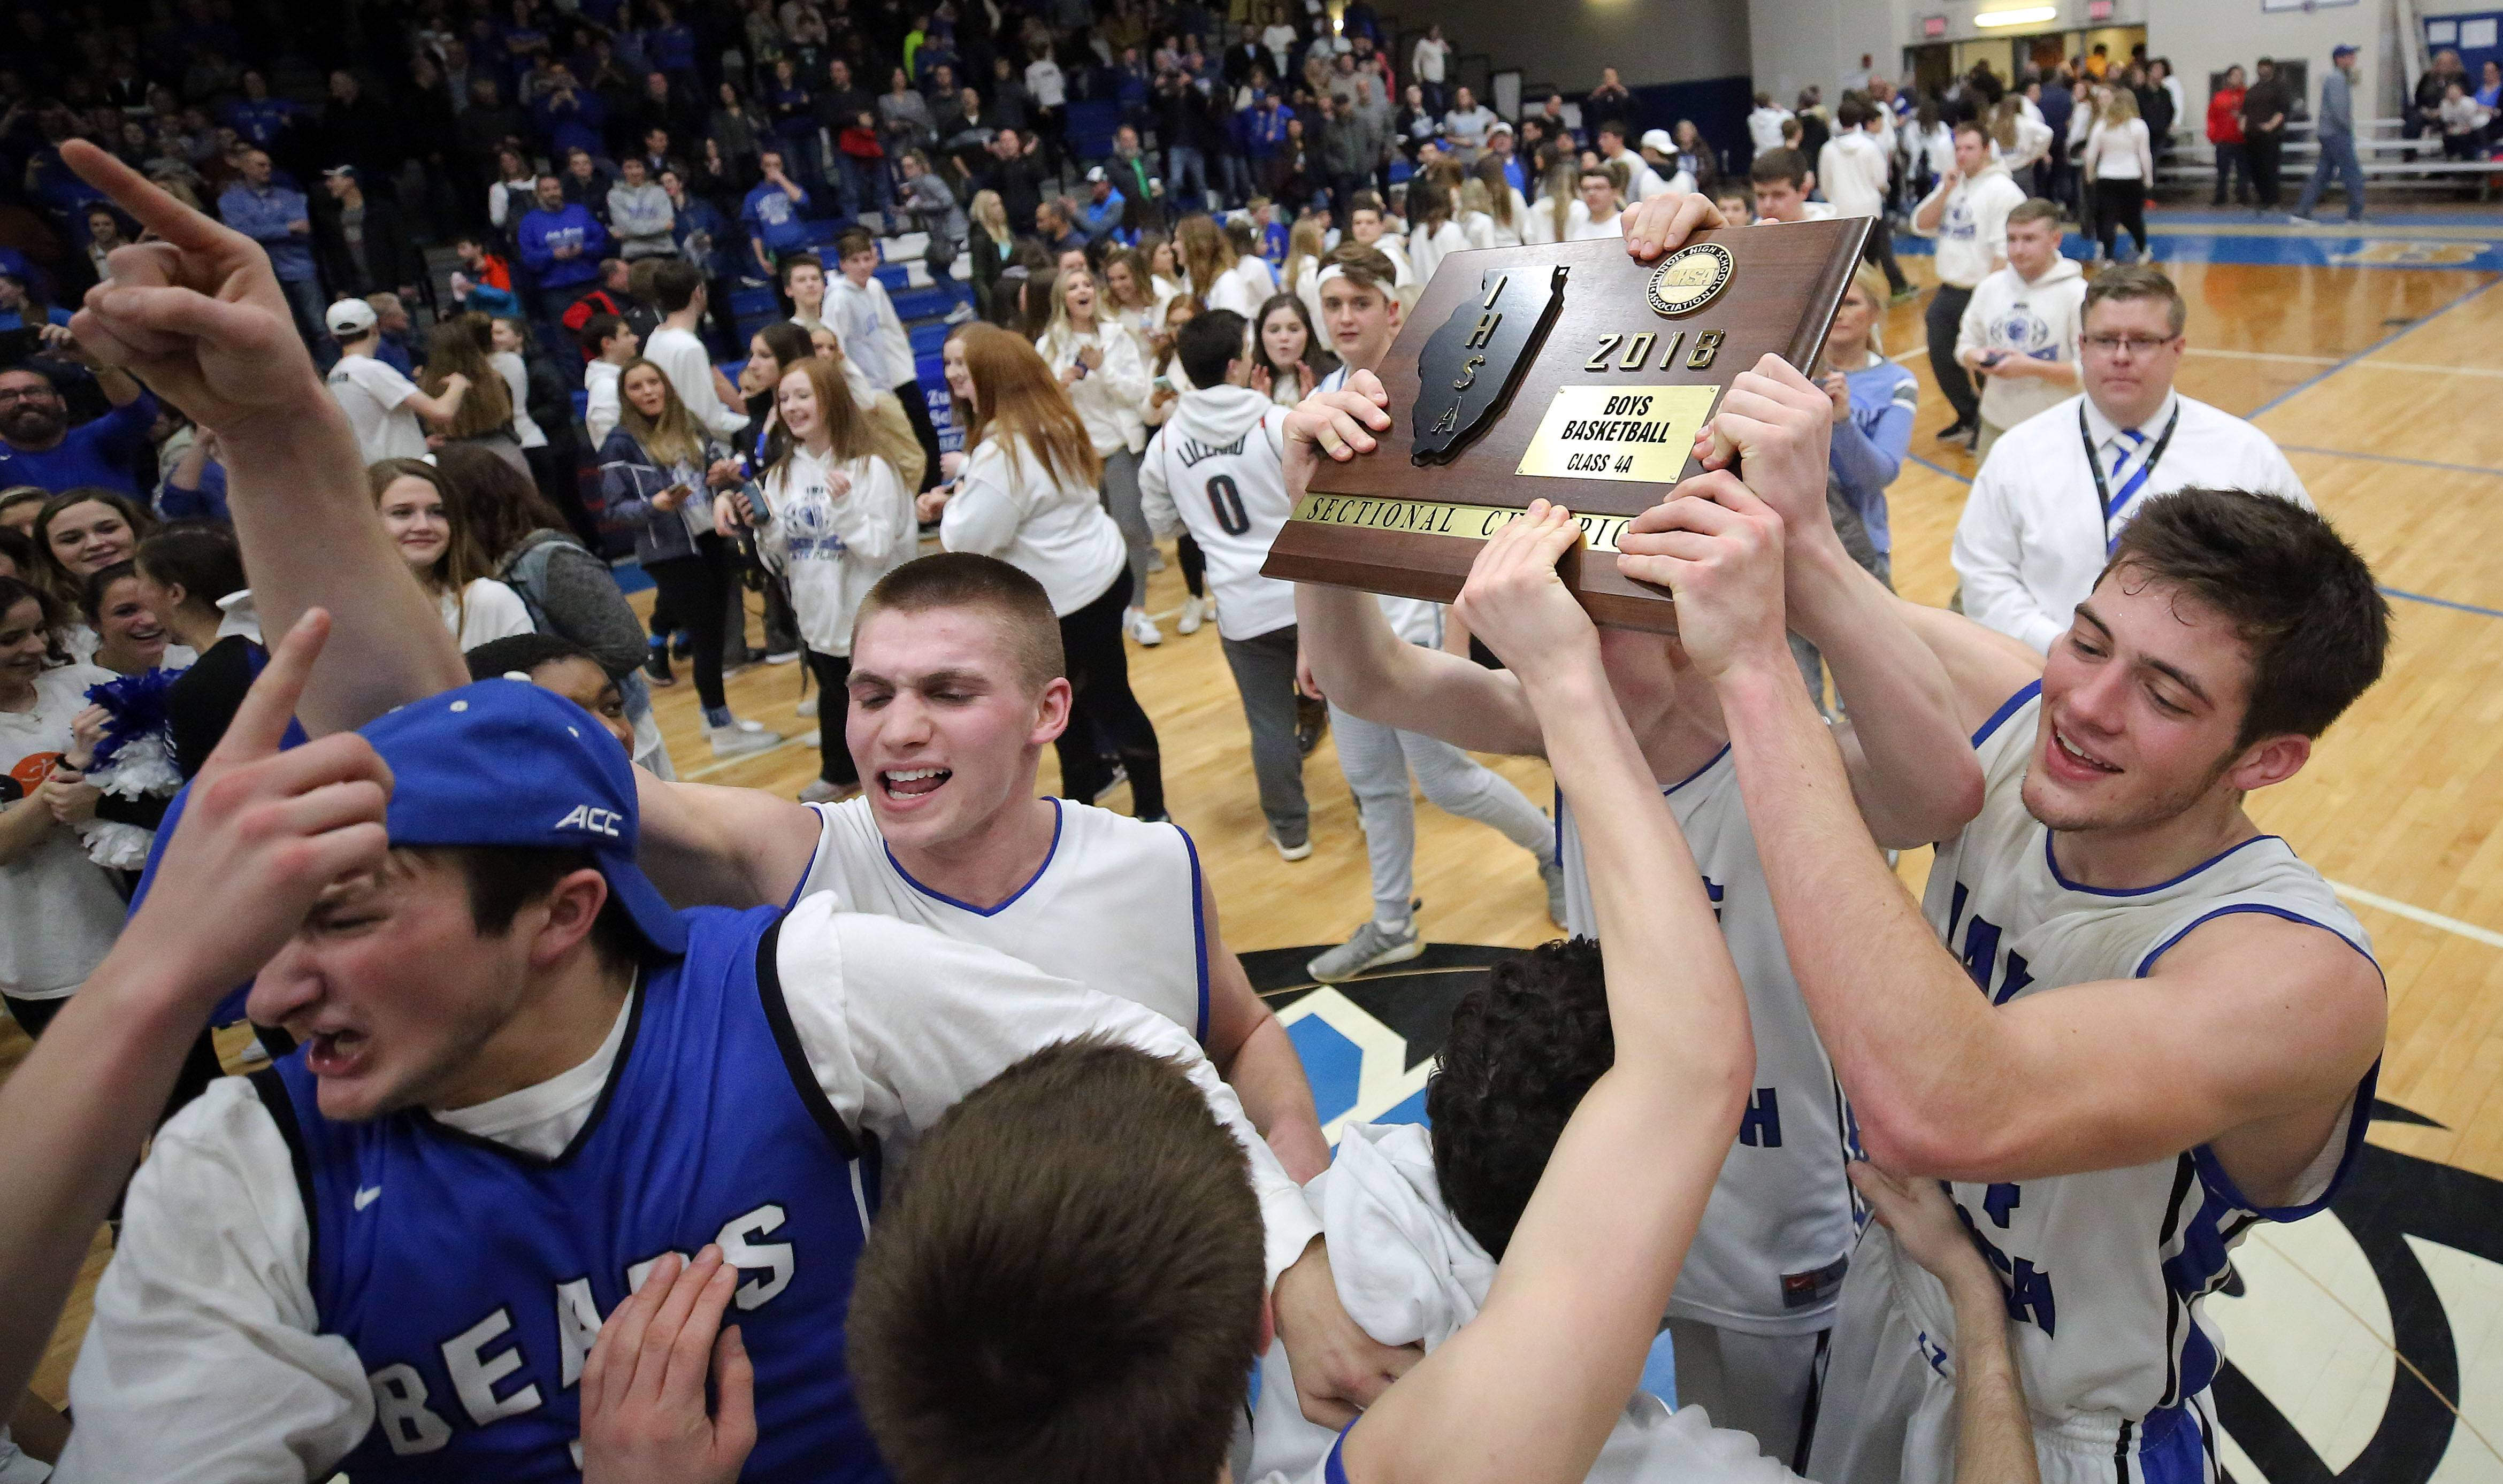 Players carry the sectional trophy after their 69-60 win over Barrington in the Class 4A sectional final at Lake Zurich on Friday.